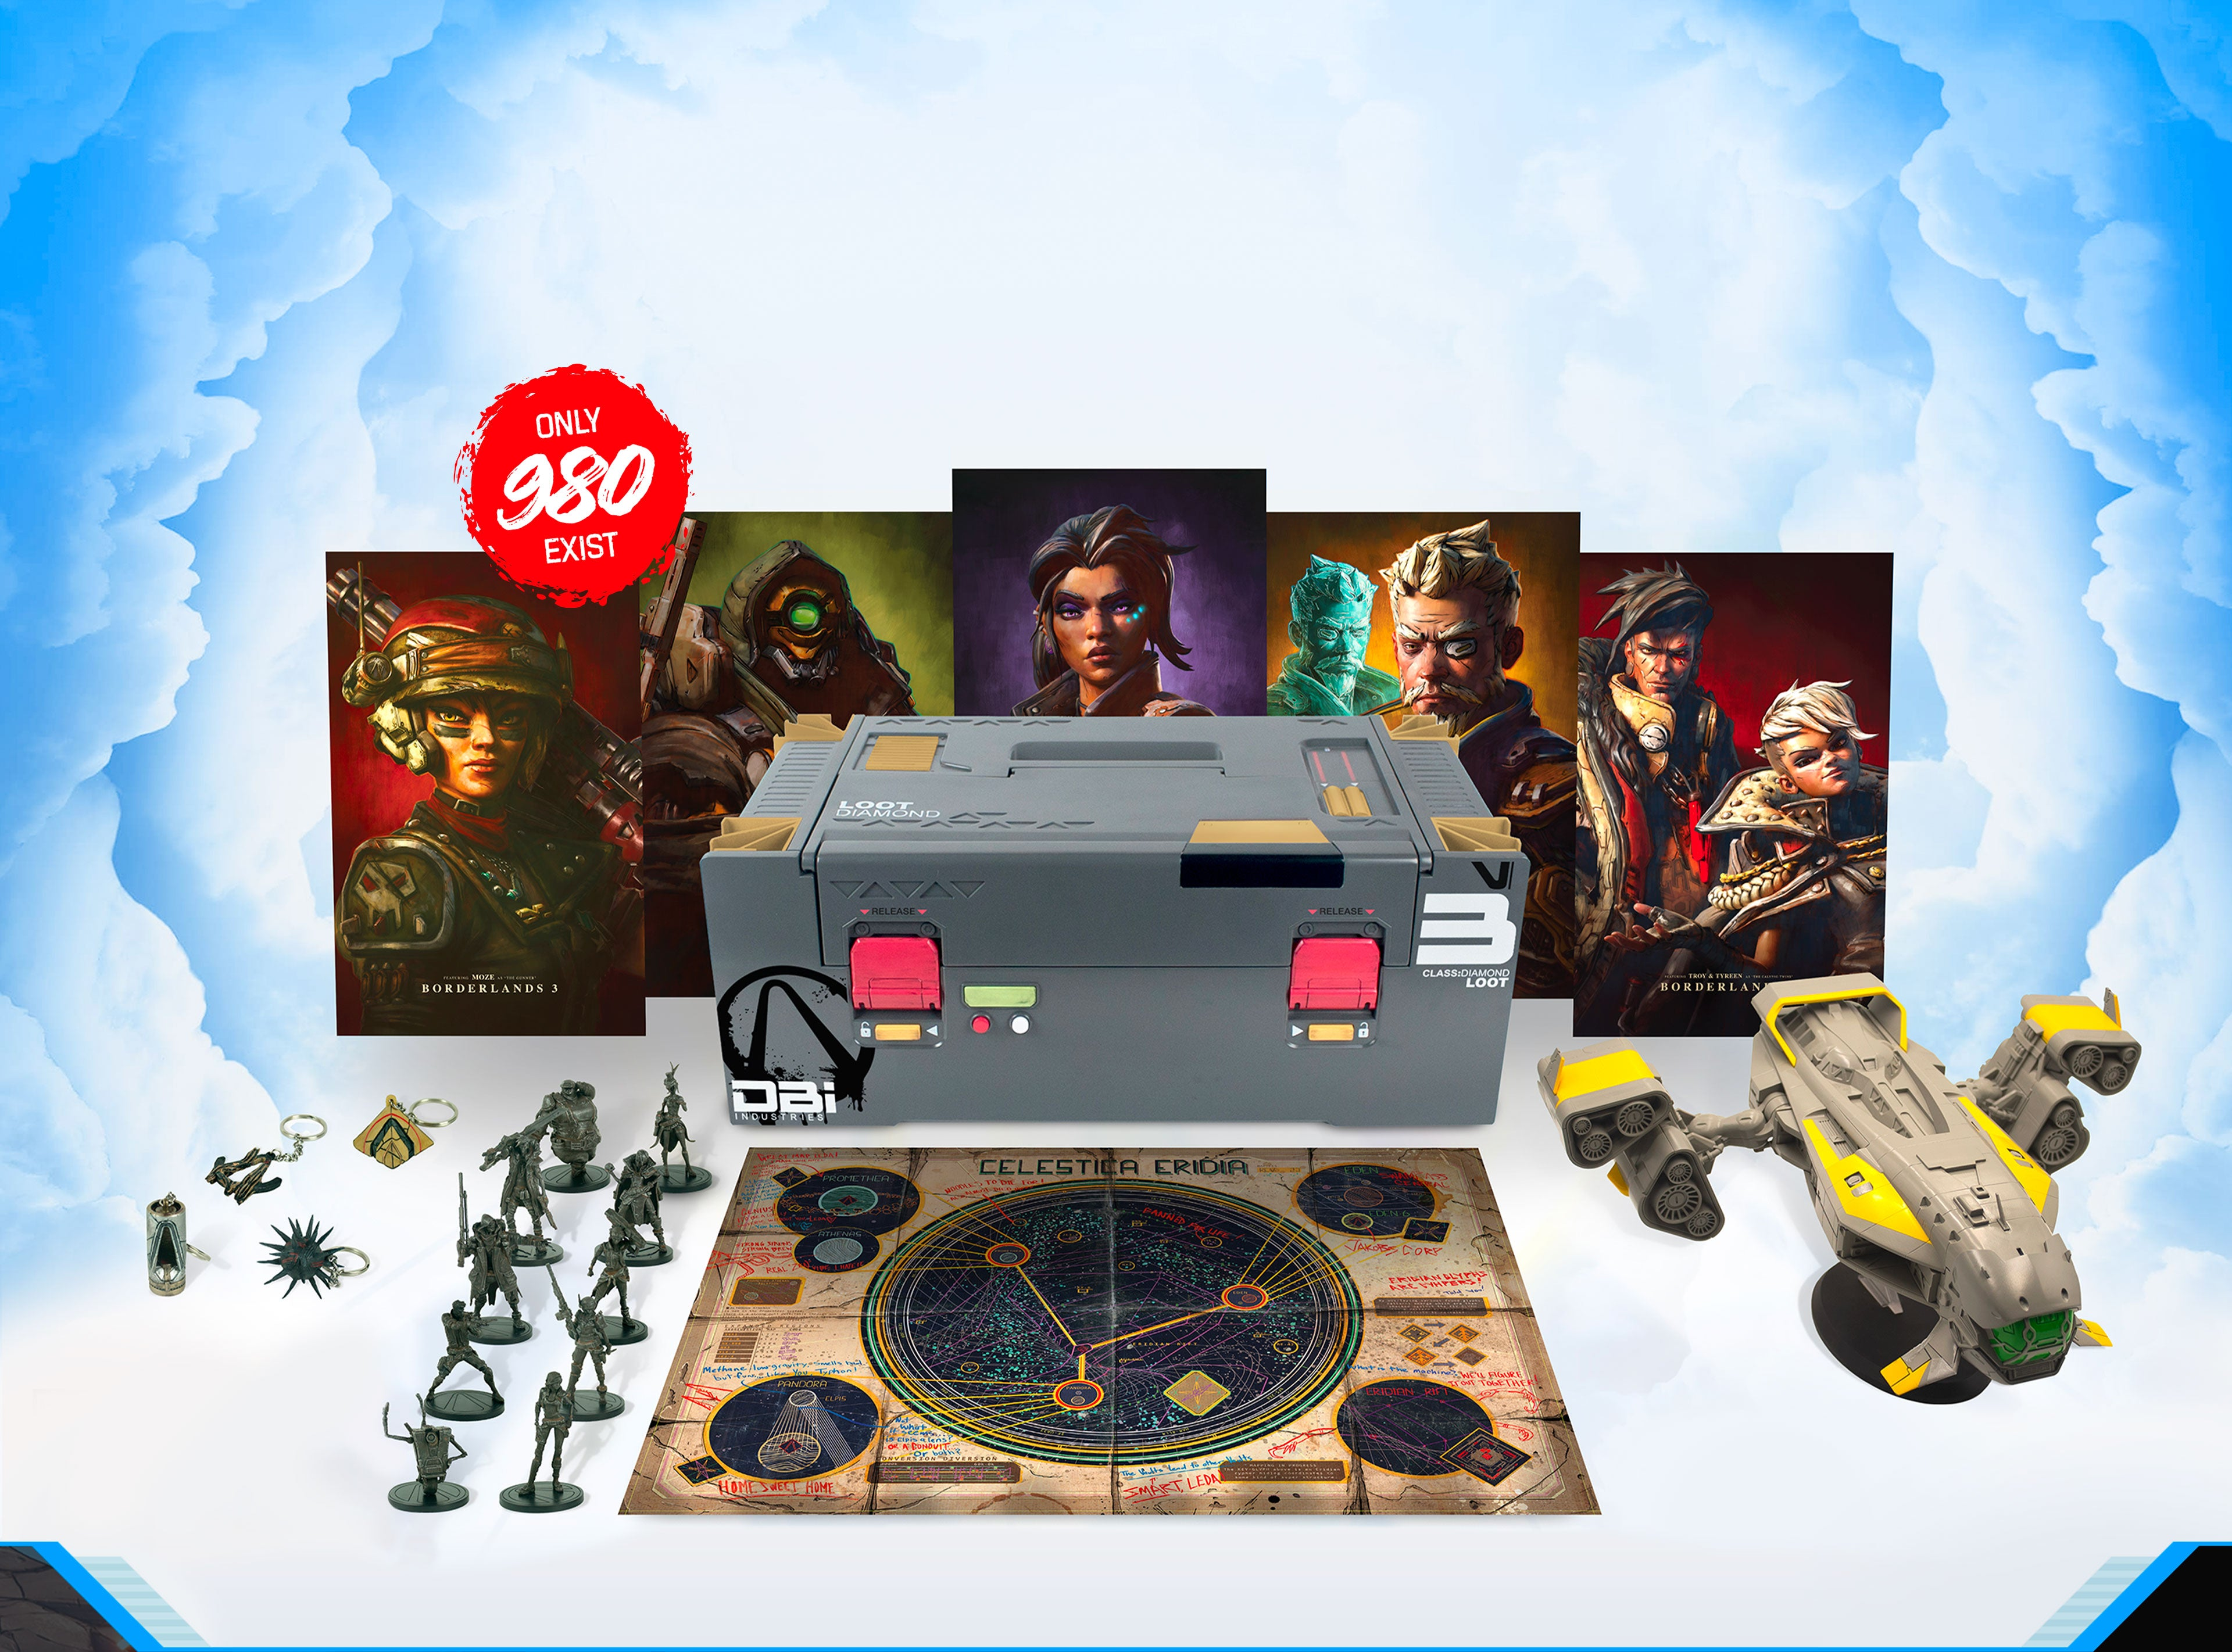 Diamond Loot Chest Collector's Edition Sign Up